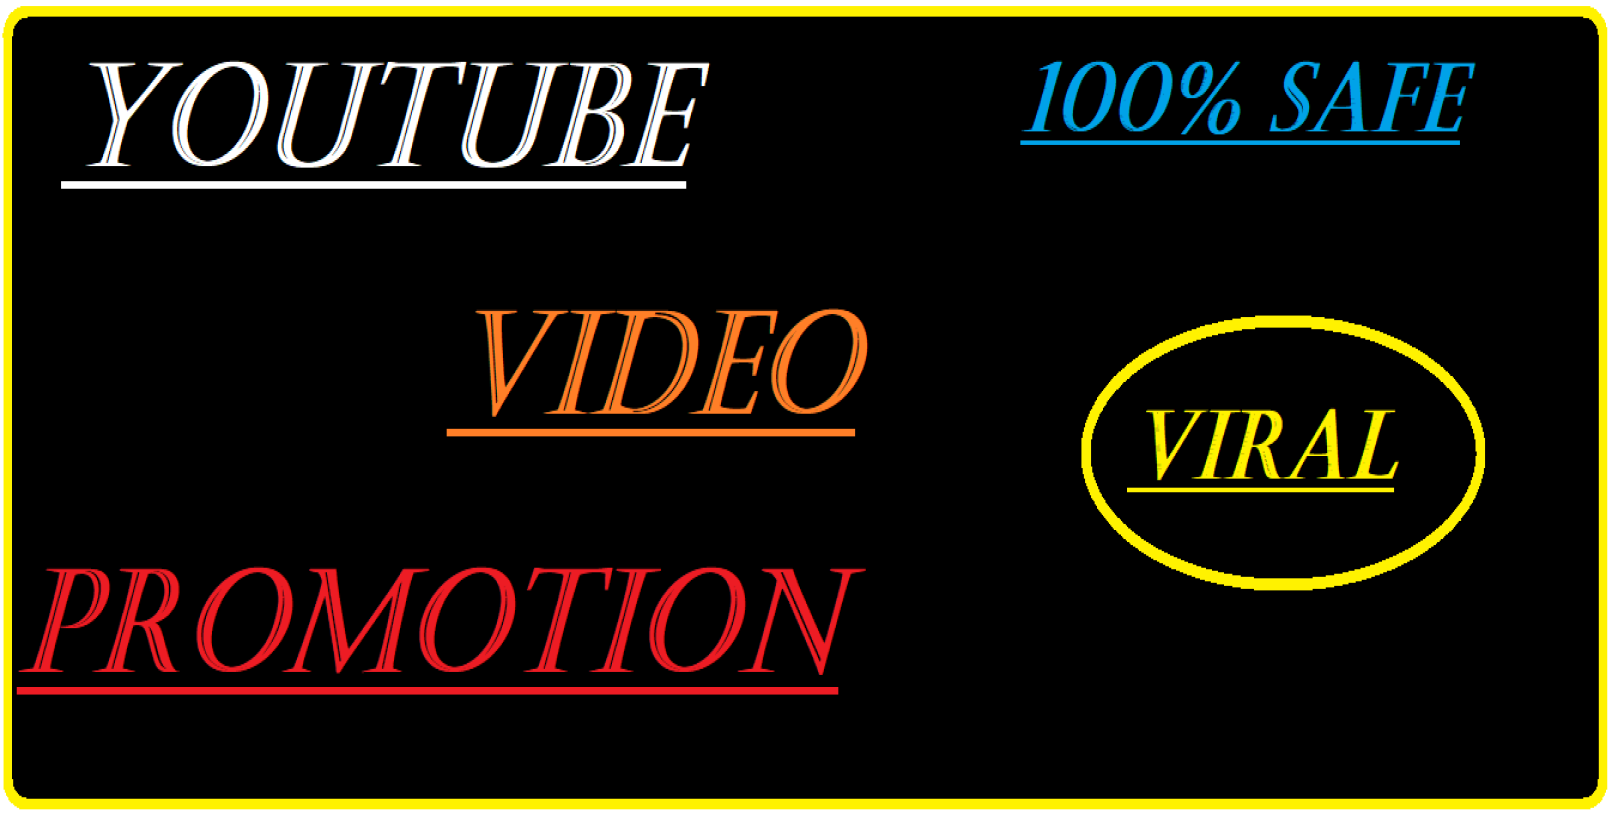 Organic instant start YouTube video promotion via seo marketing